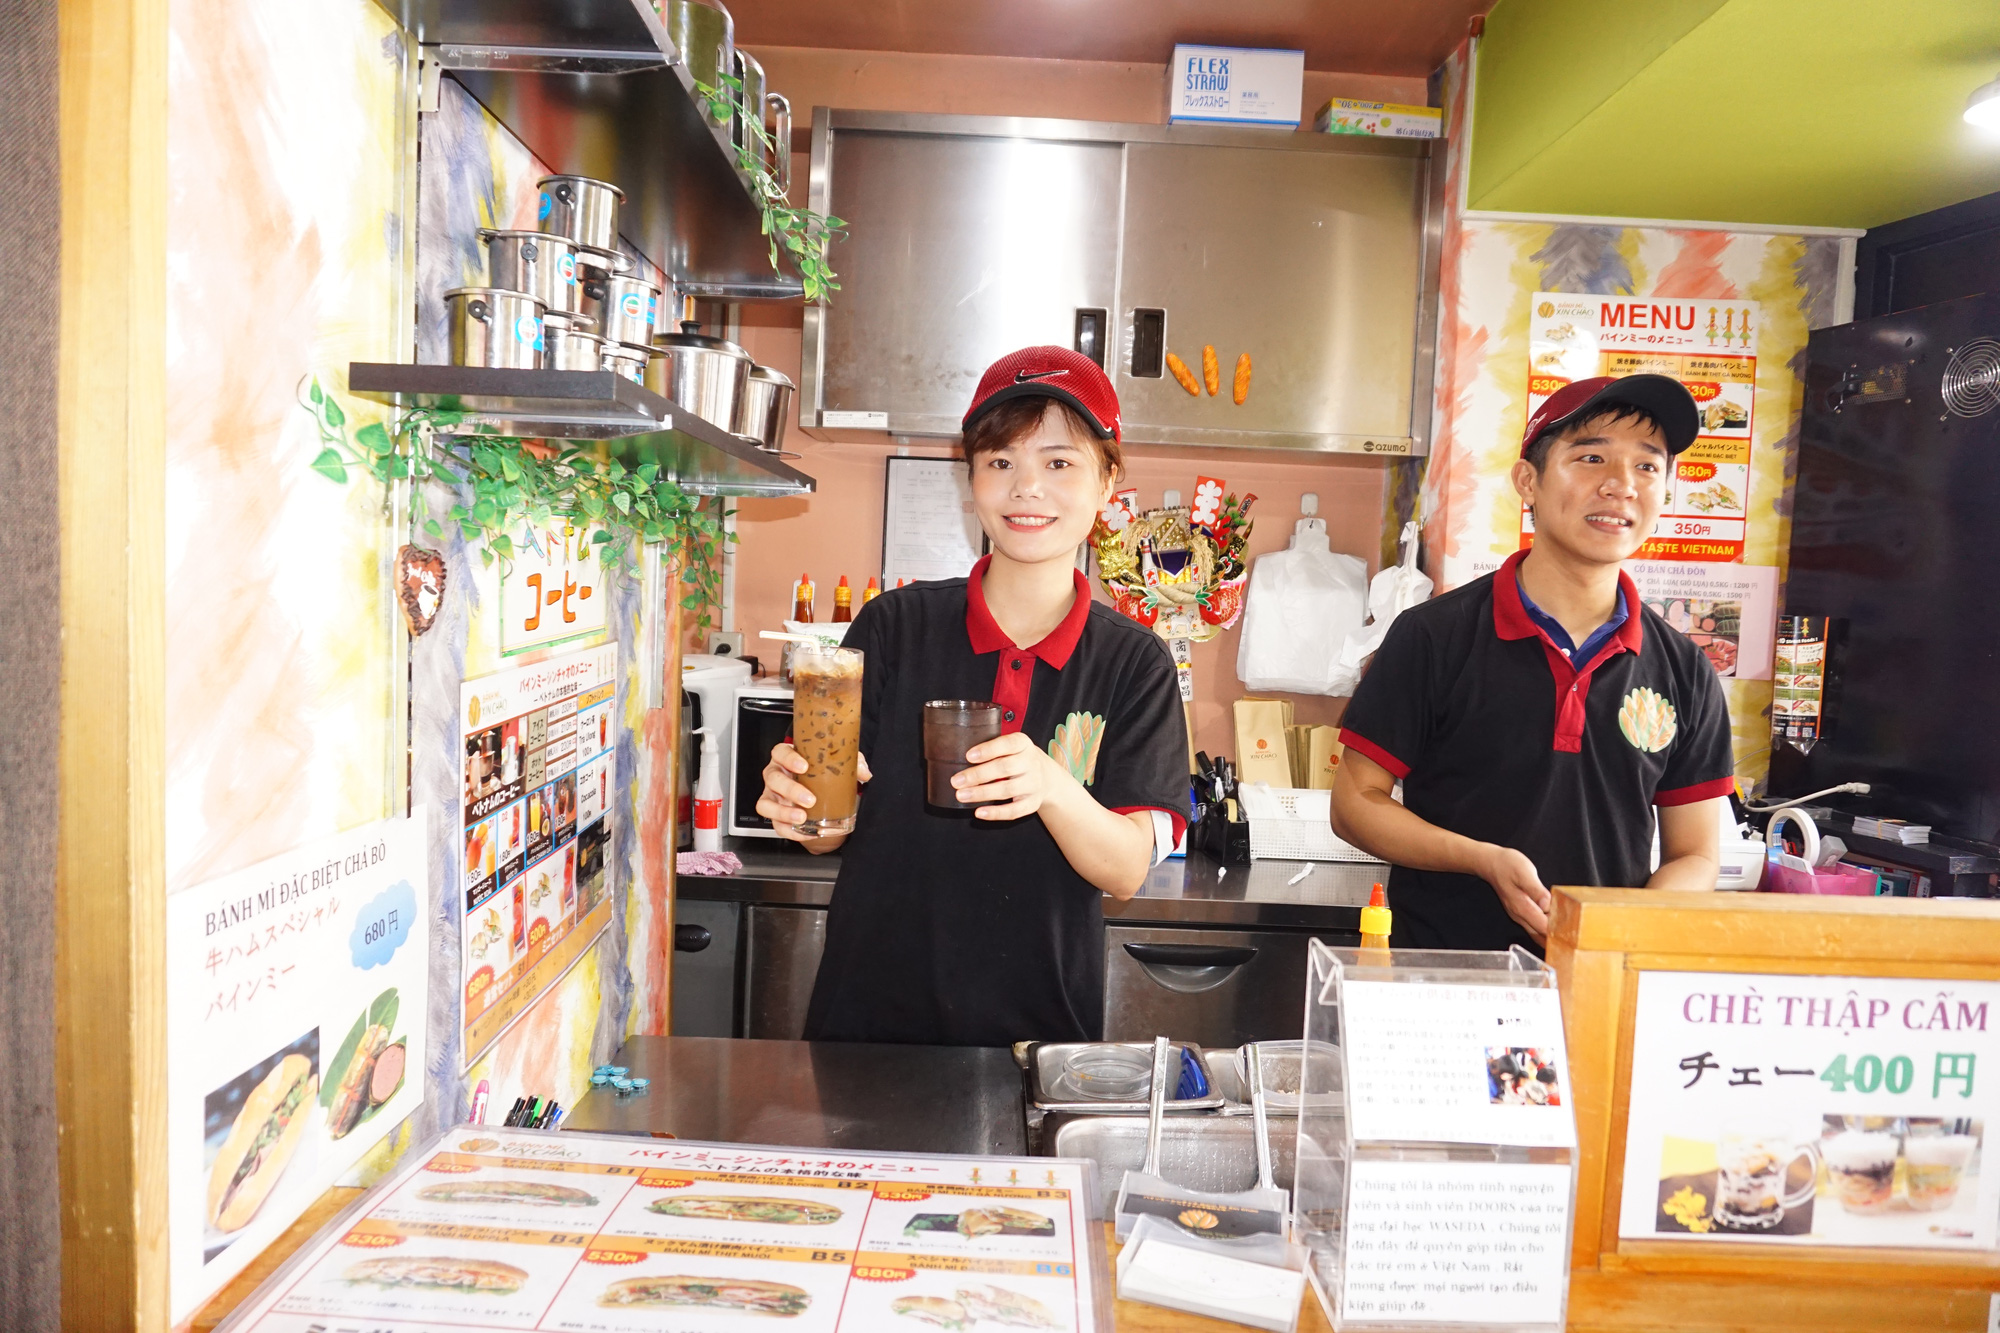 Bui Thanh Tam (right) and his wife stand in a Banh Mi Xin Chao store in Tokyo, Japan. Tam's wife is holding a glass of 'ca phe sua da' (Vietnamese-styled iced coffee with condensed milk). Photo: Cong Nhat / Tuoi Tre